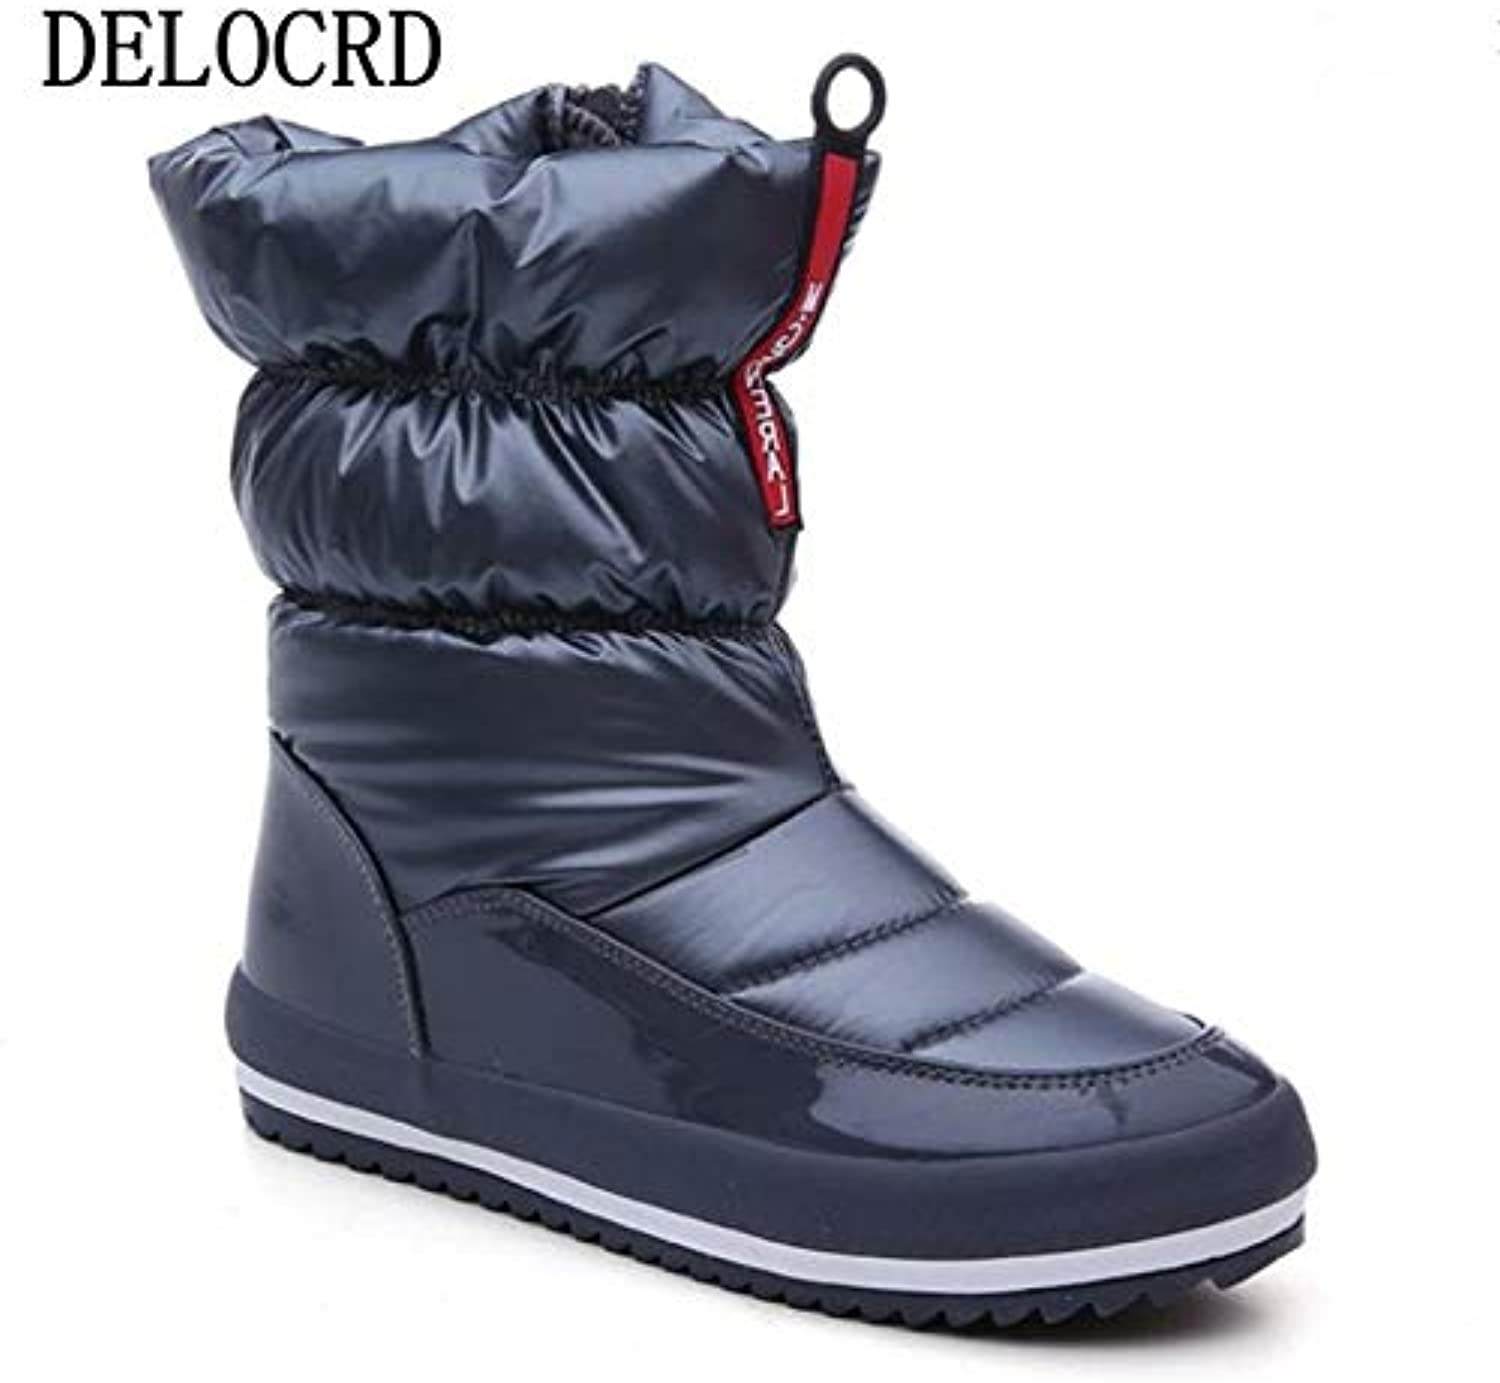 DDL- Snow Boots   Snow Boots Female Winter New Plus Velvet Warm Boots Waterproof Non-Slip Wild Short Boots Hot Brand Women's Cotton shoes Footwear